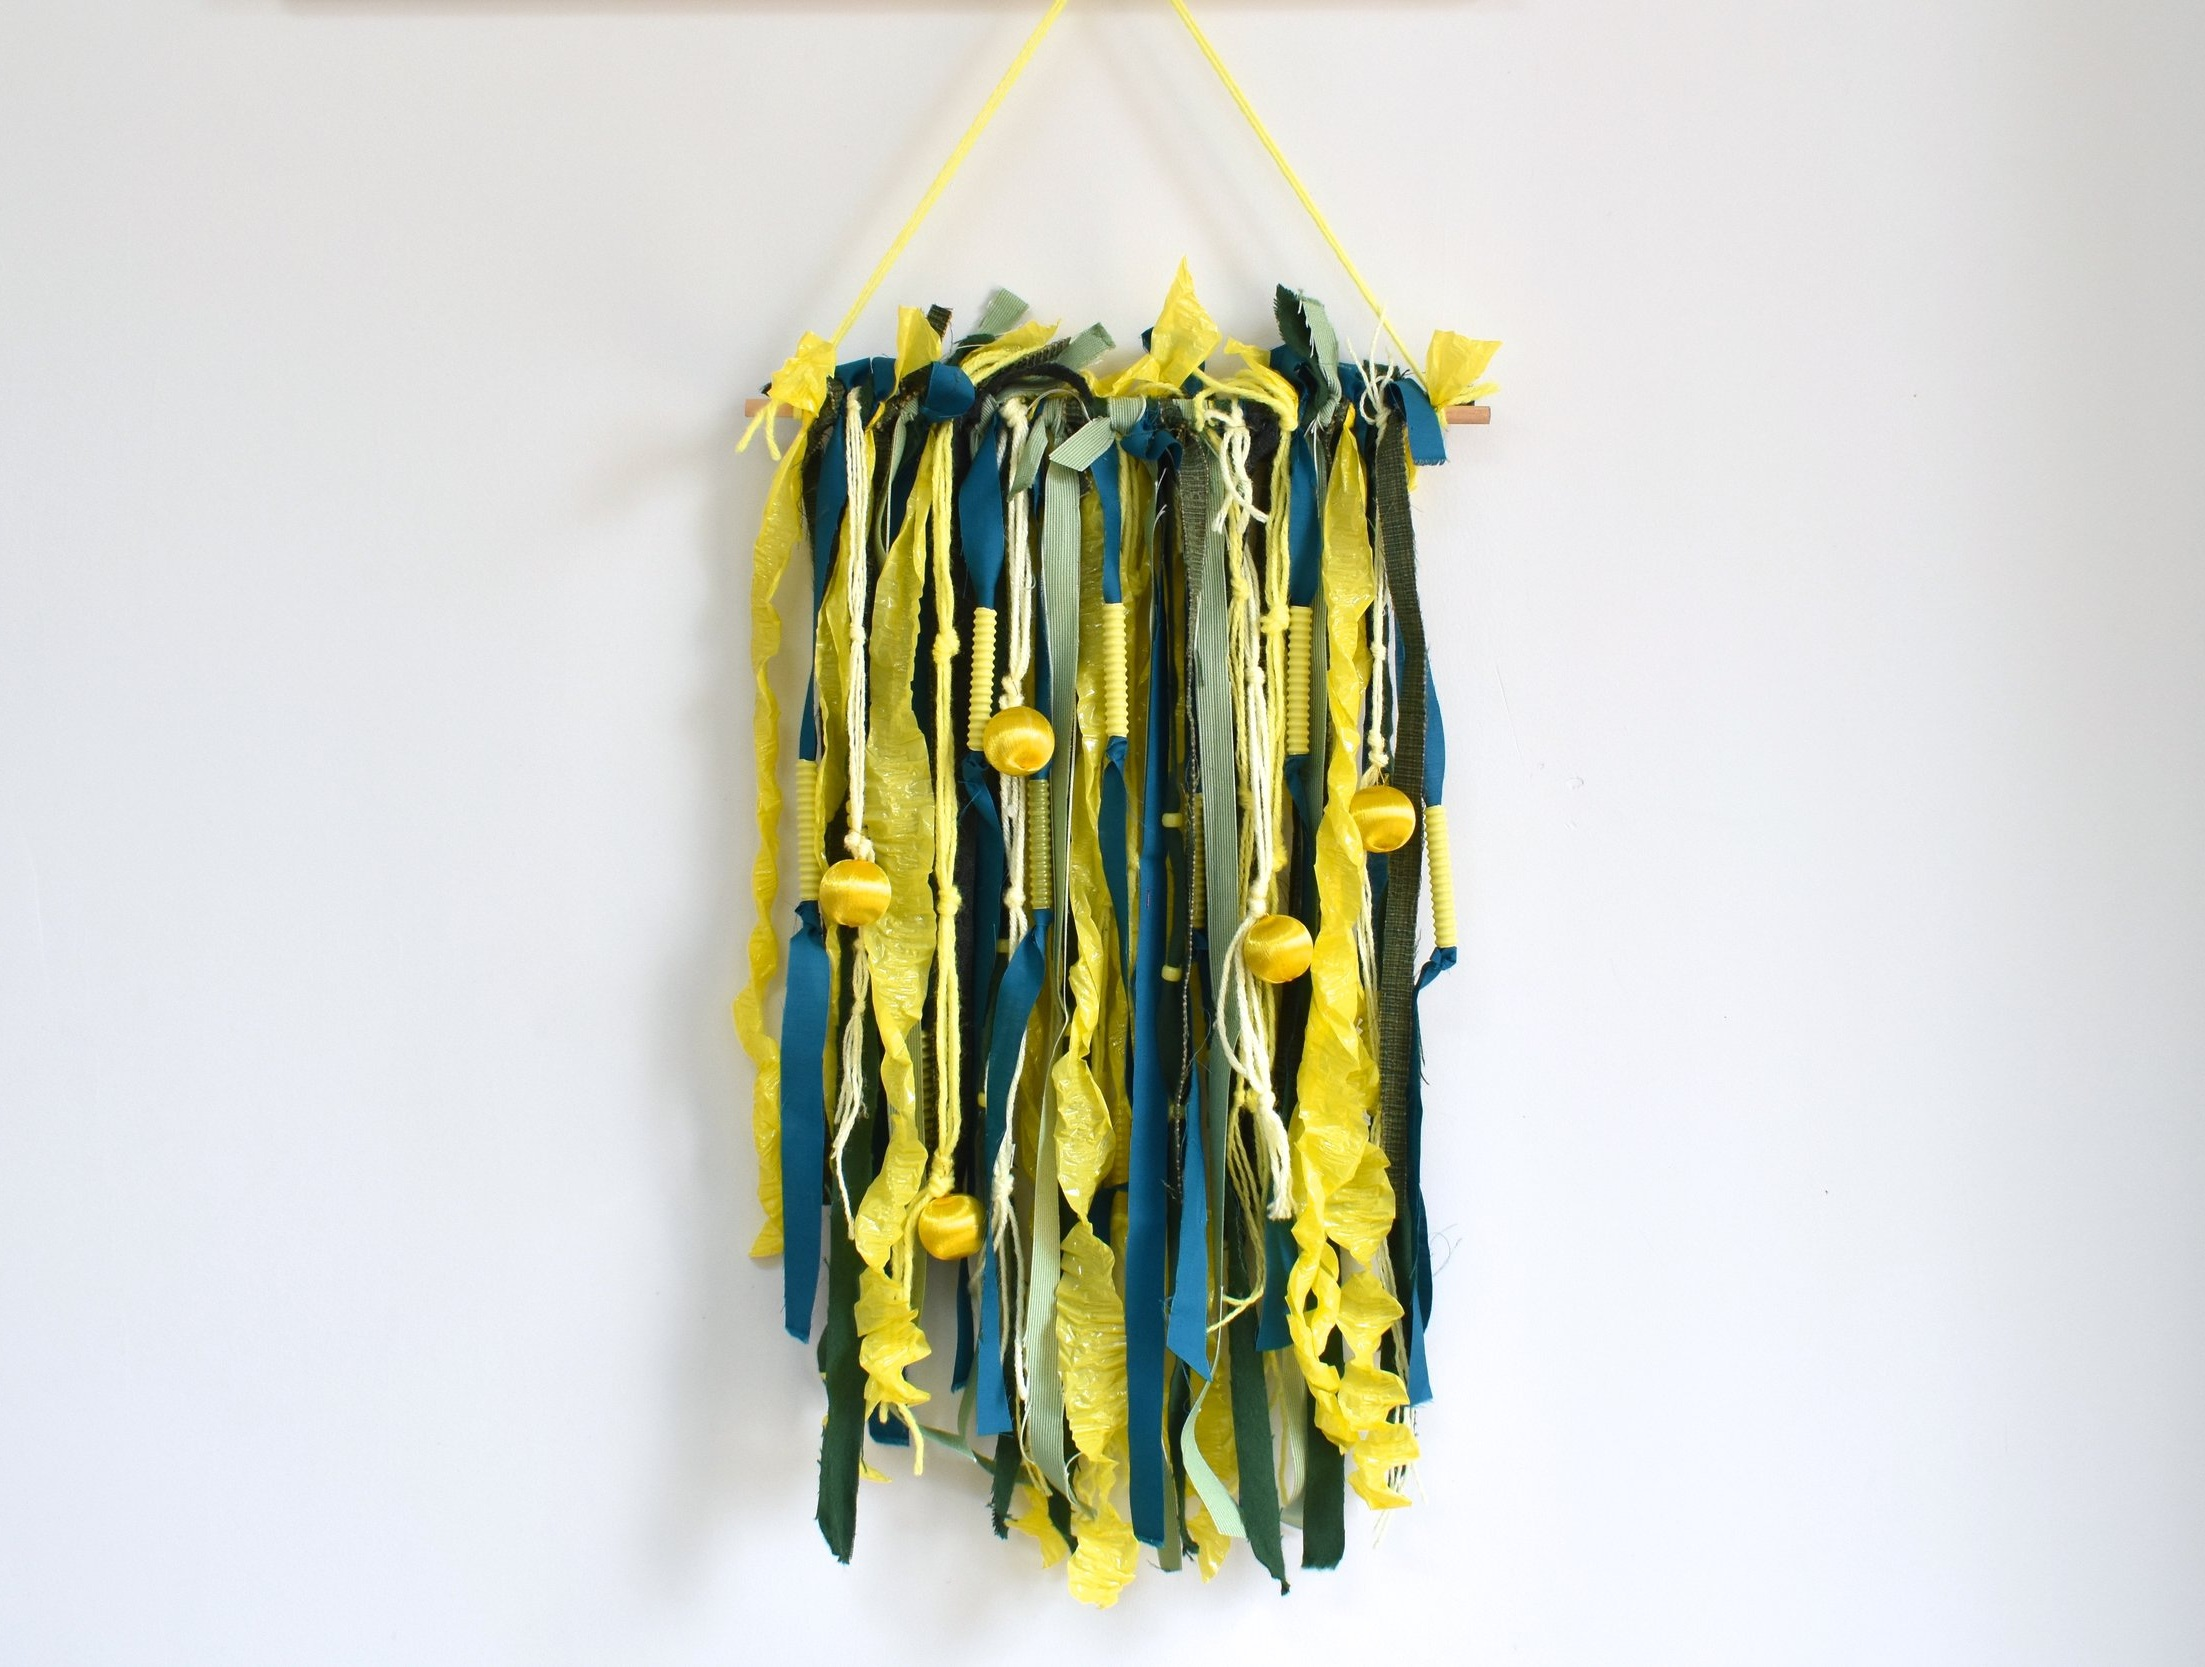 Fiber Fringe Wall Hangings